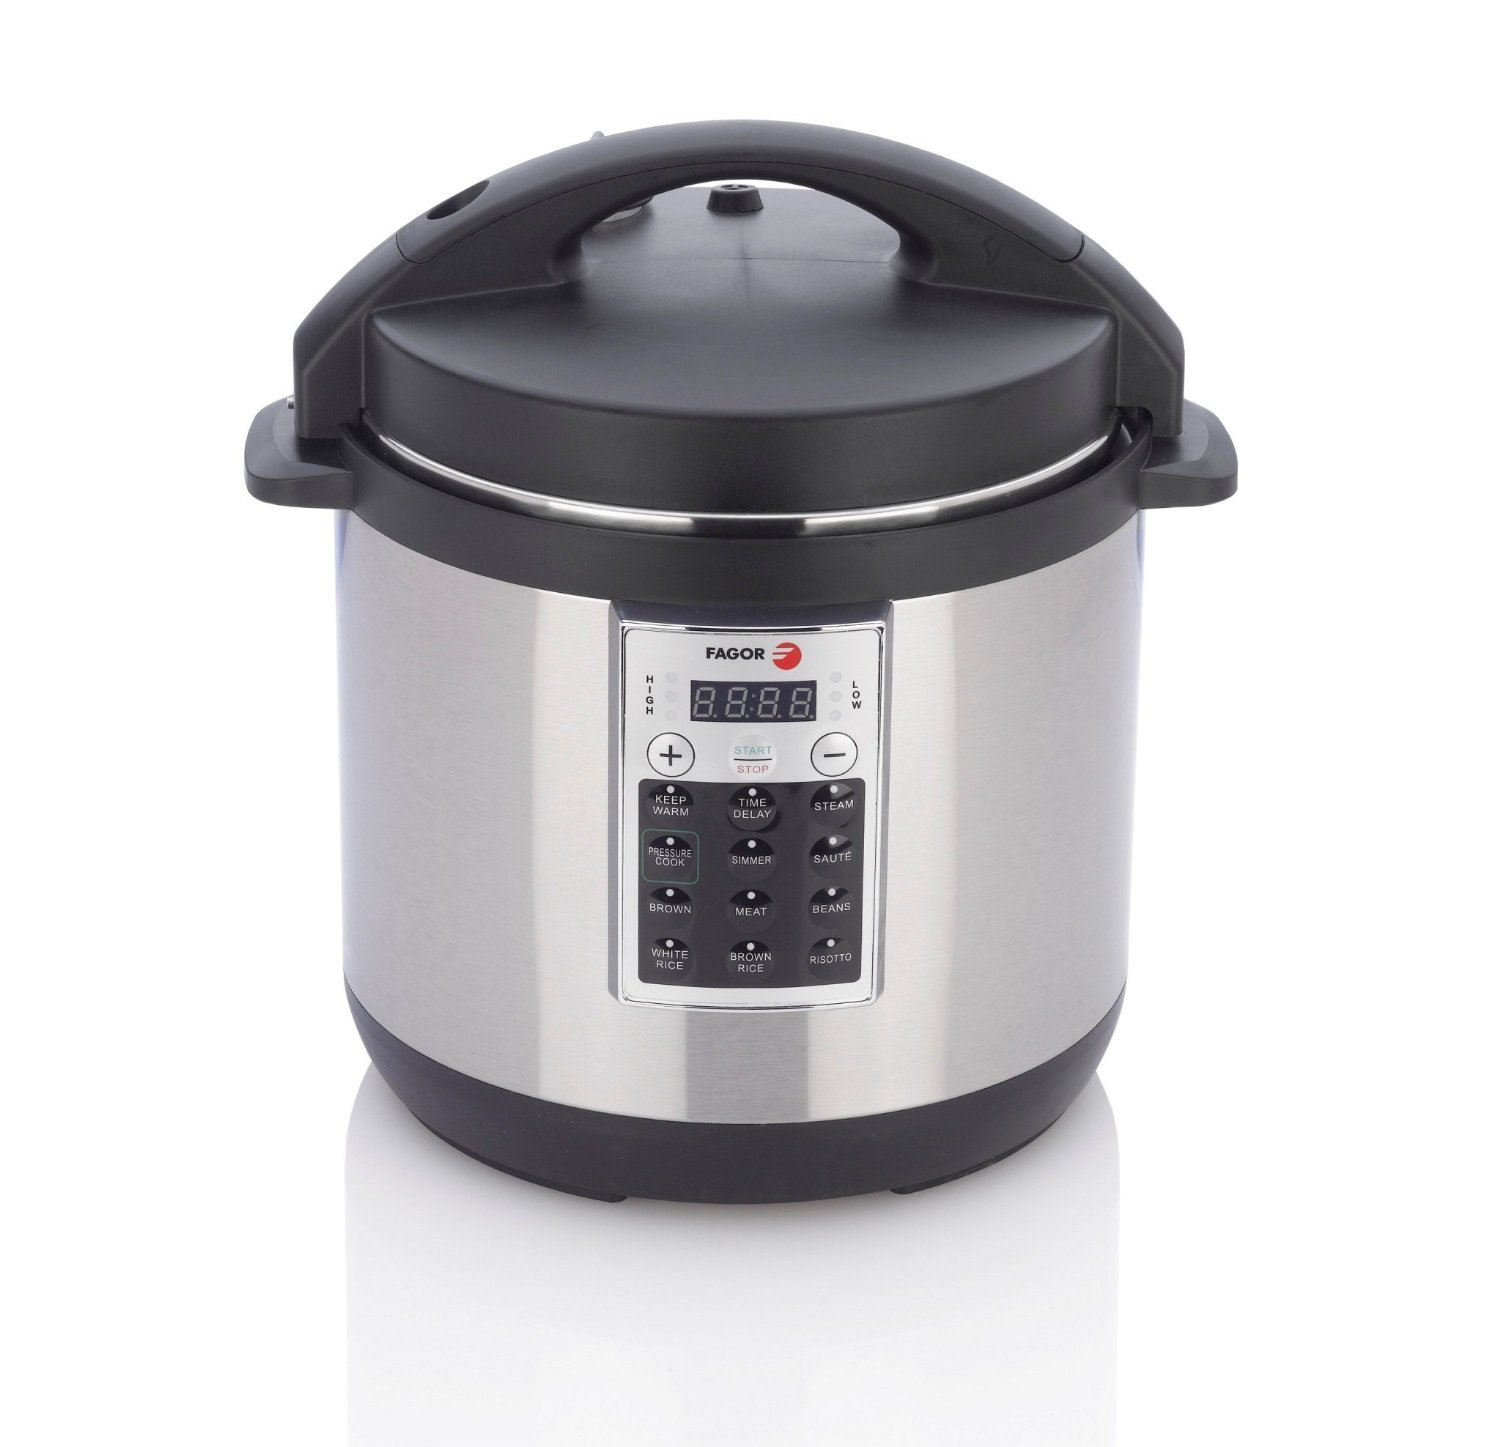 Fagor 670041930 Premium Electric Pressure and Rice Cooker, 6 quart, Silver